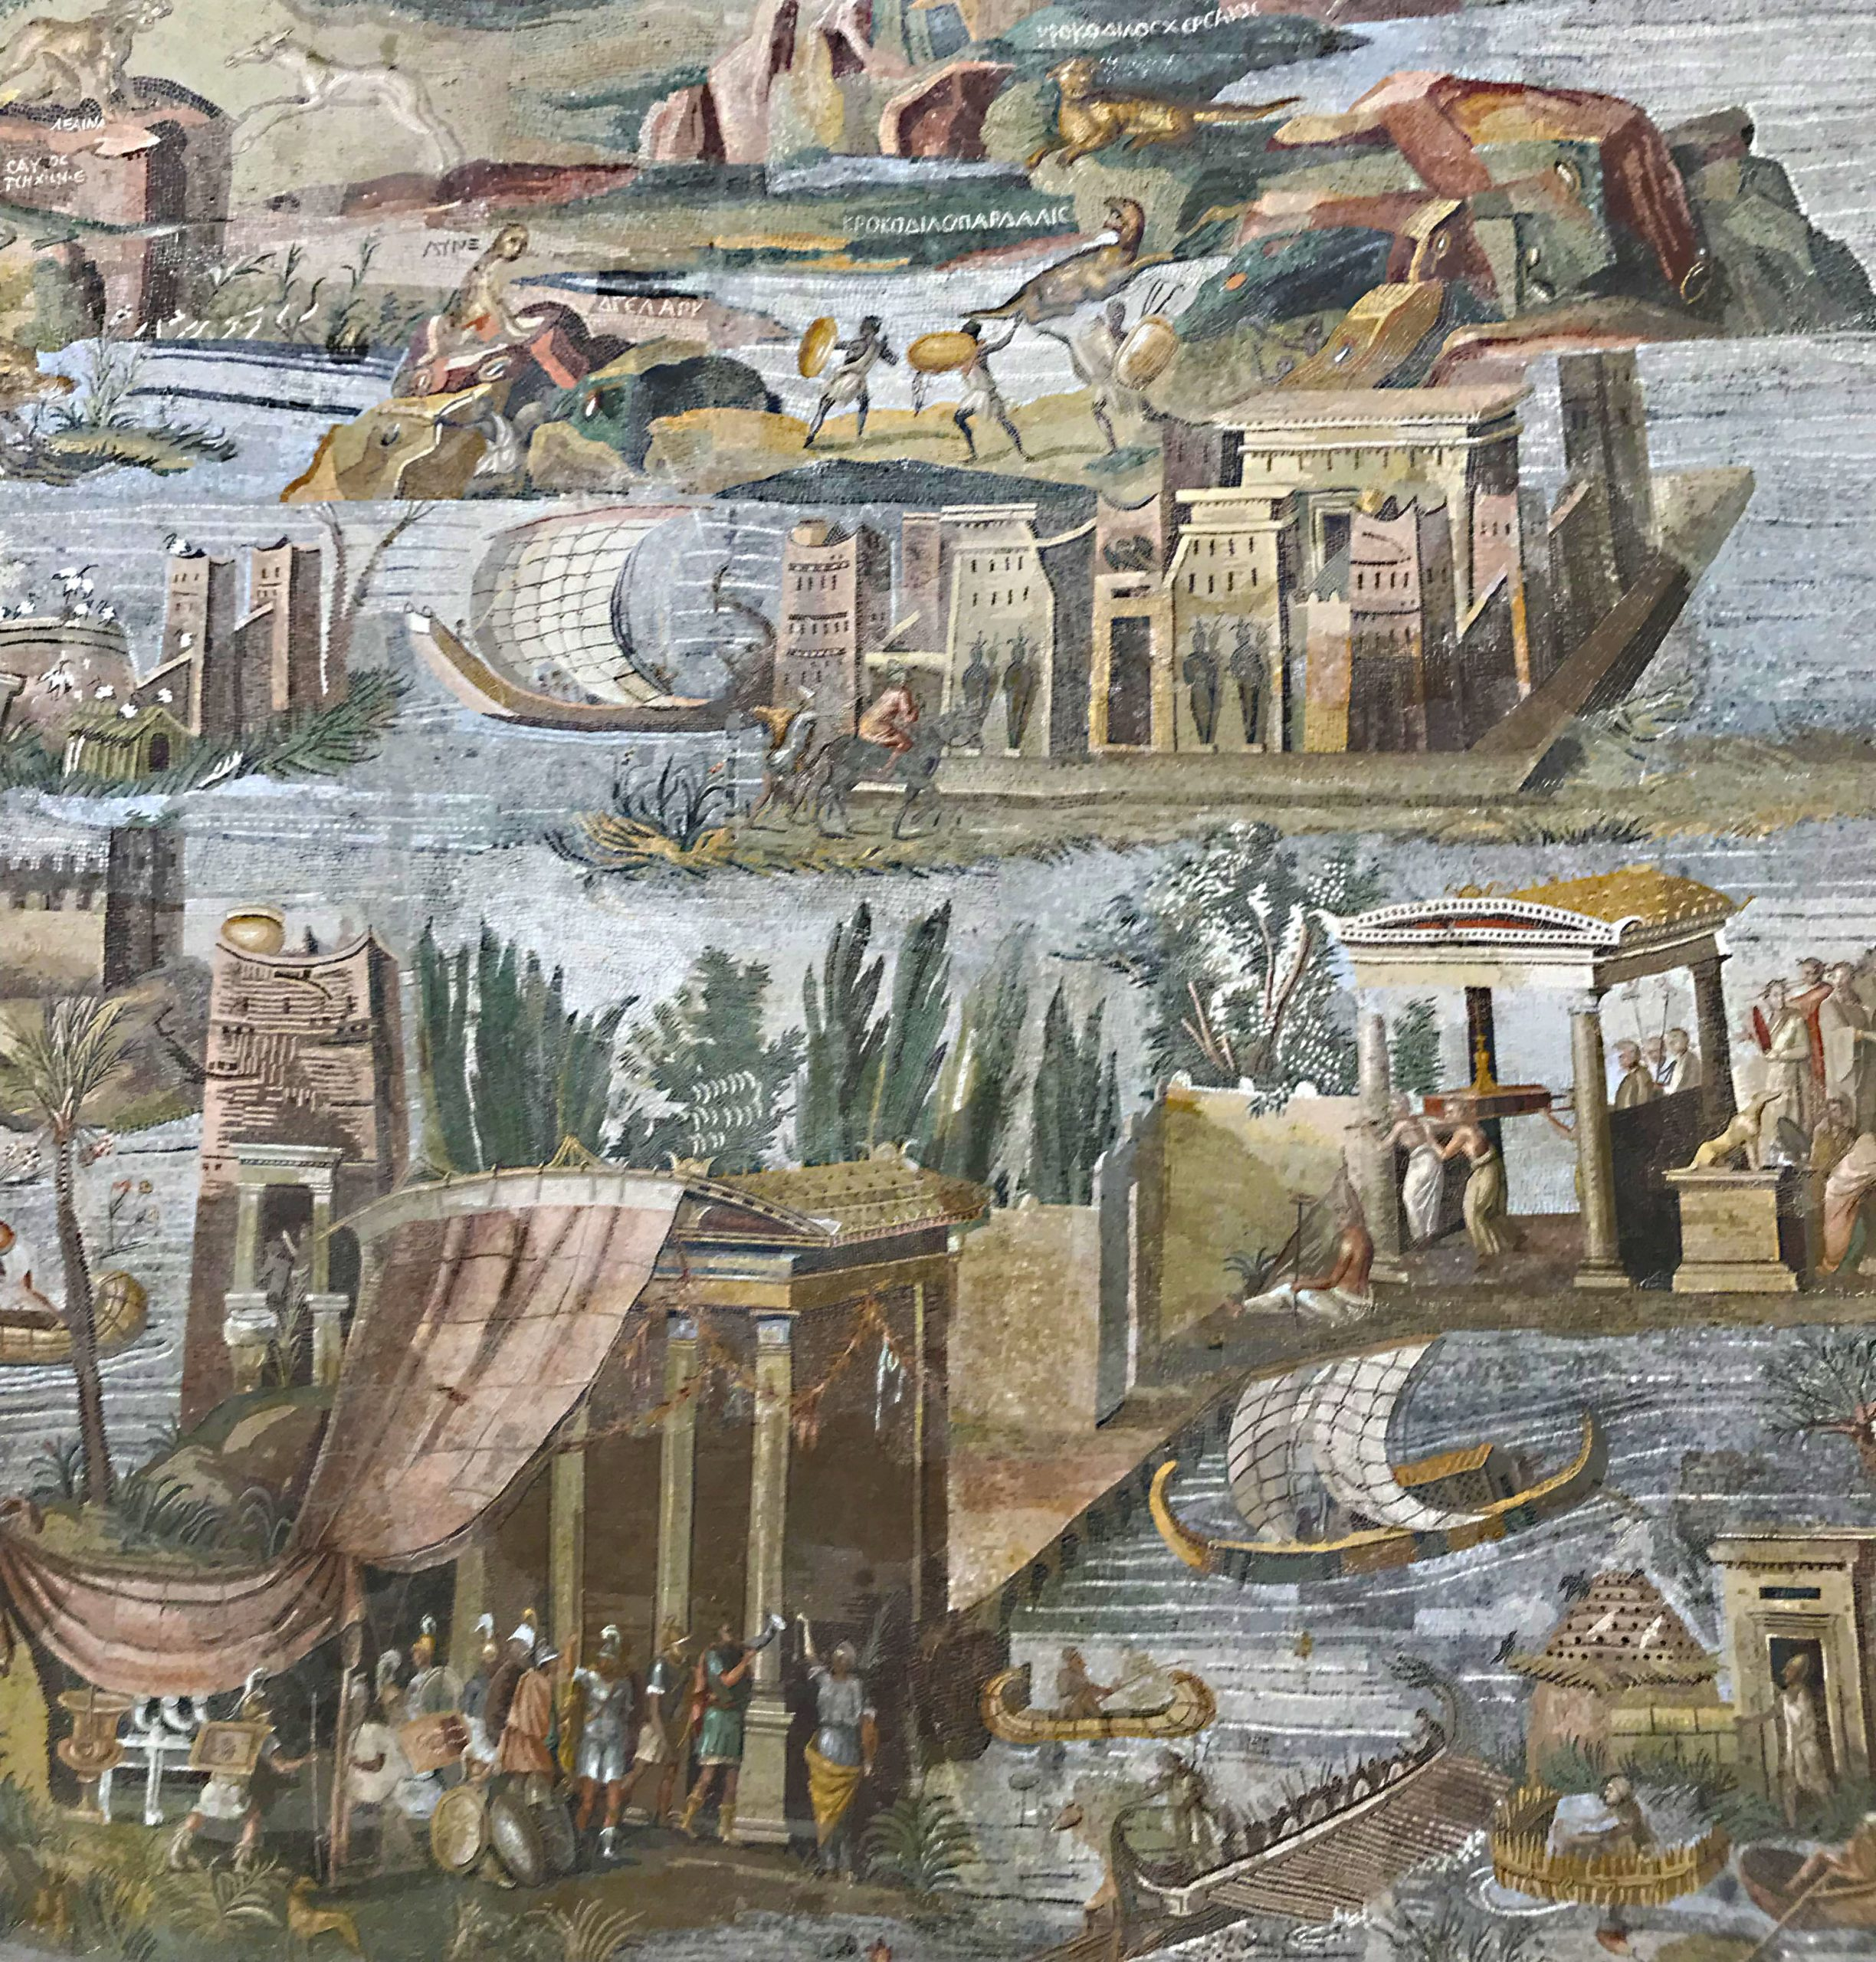 Seminar – Diversity and Peoples of the Roman Empire